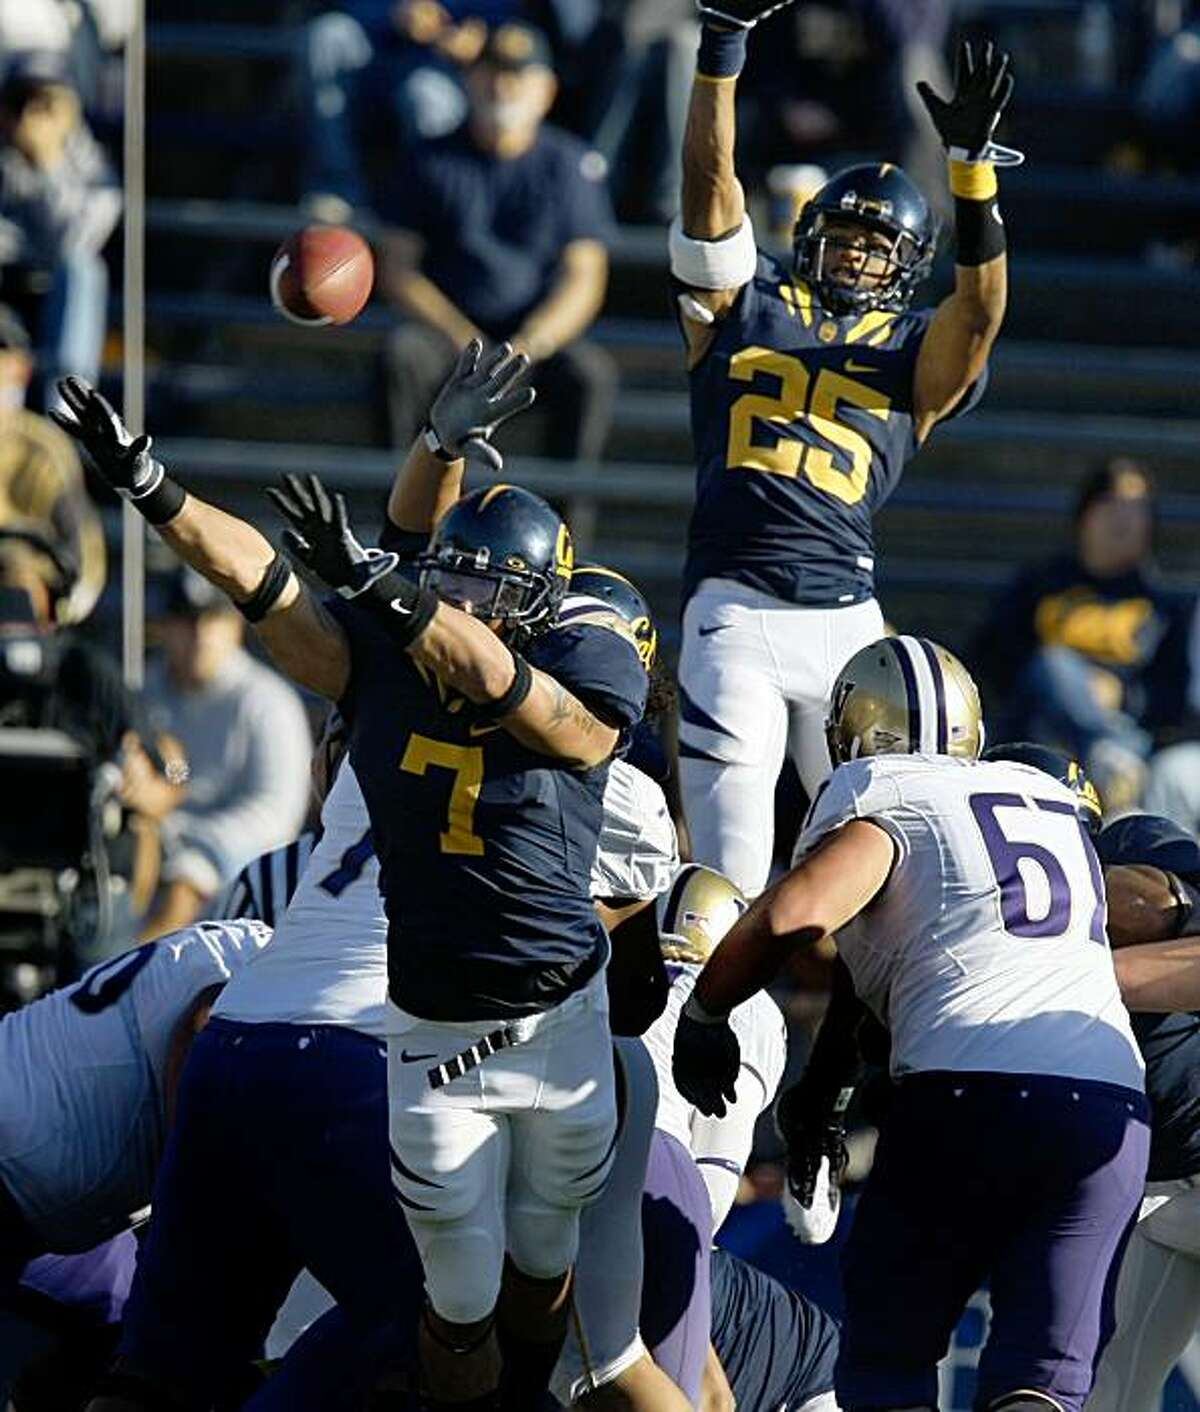 Cal?•s Anthony Felder and Brett Johnson go airborn as they try to block Washington's extra point. Cal defeated Washington 48-7 in there NCAA college football game in Berkeley Saturday, Dec. 6, 2008.